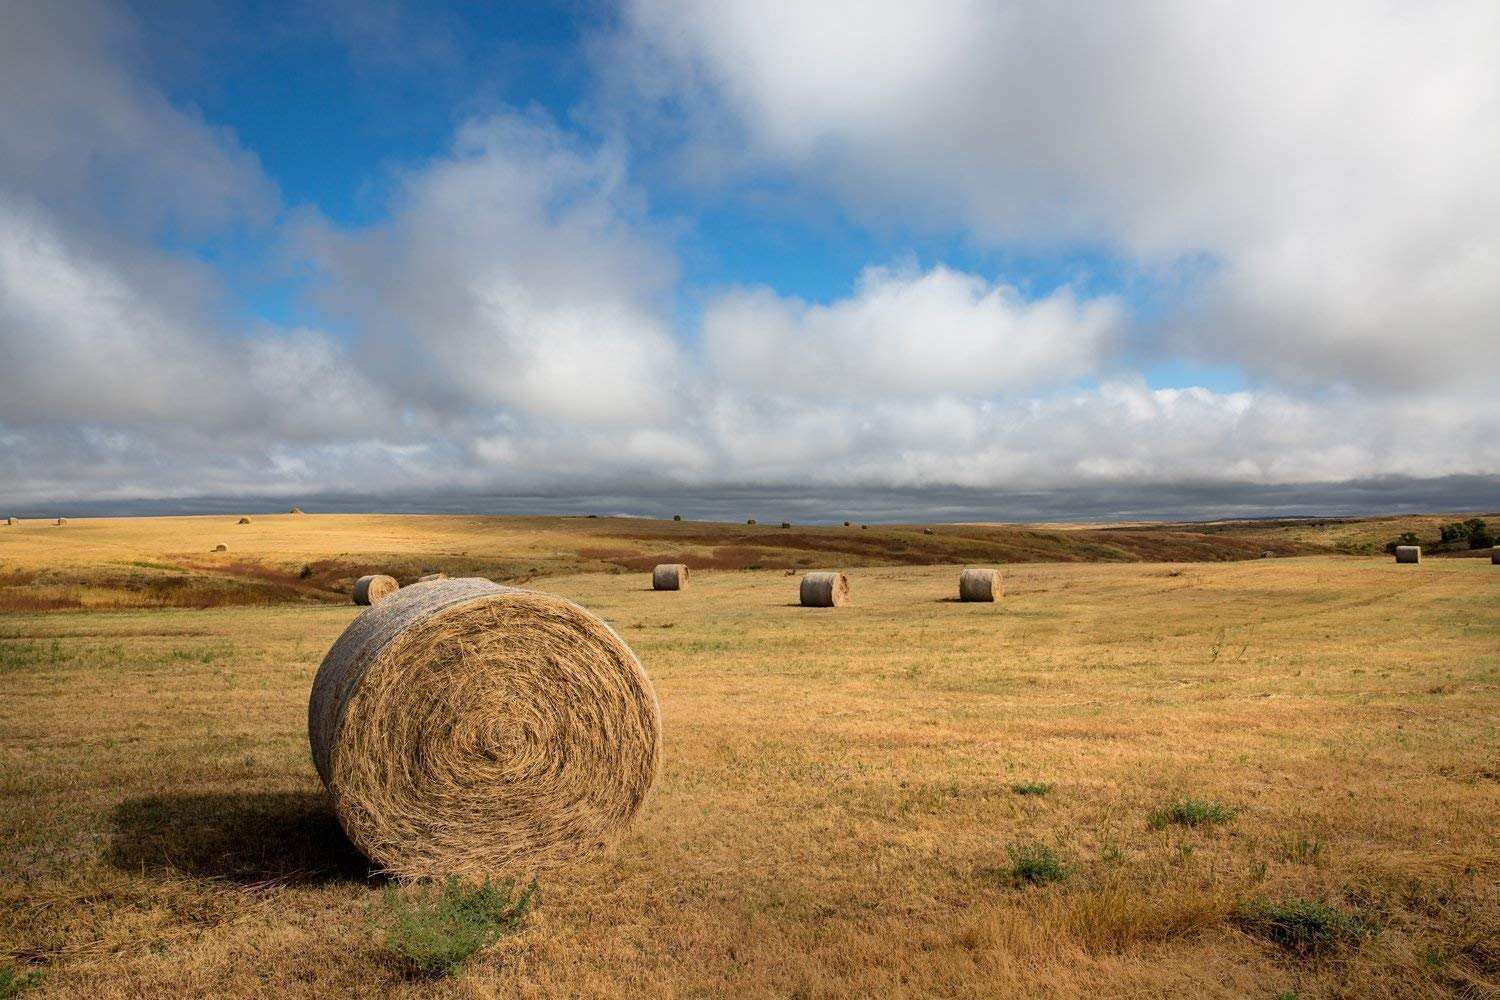 South Dakota Photography Art Print - Picture of Hay Bales Under Clearing Sky Farming Home Decor 5x7 to 30x45